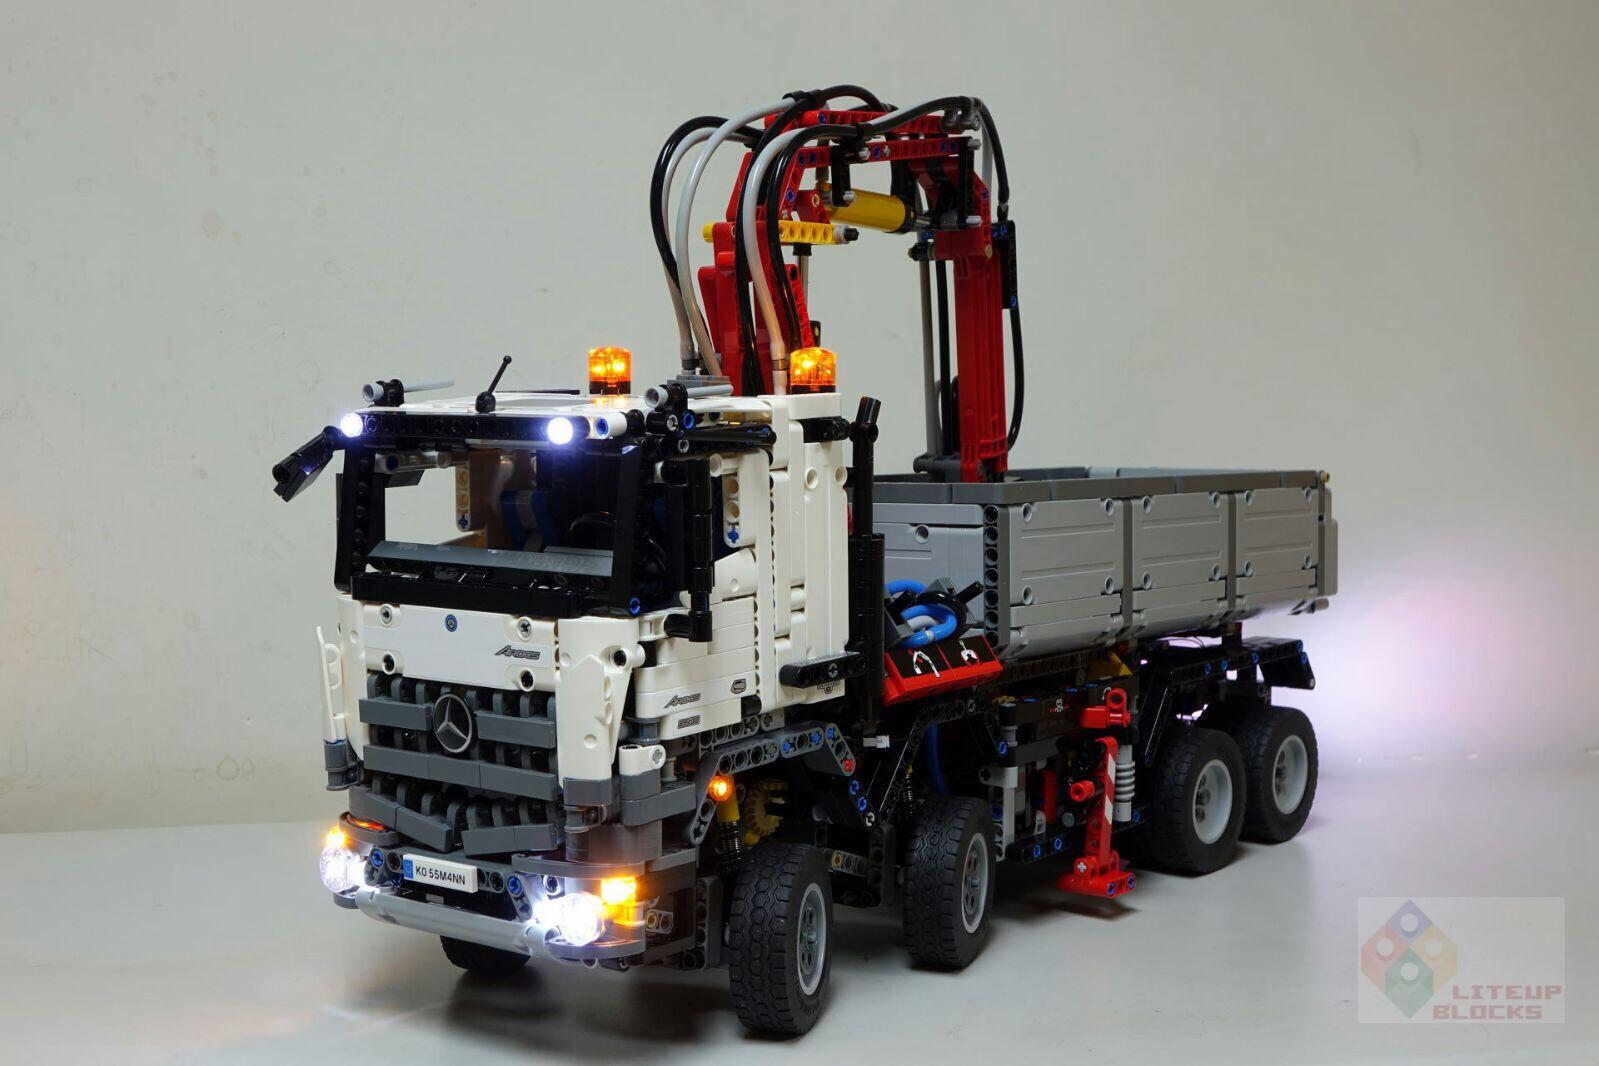 Top 5 Lego Lighting Construction Toy With Light